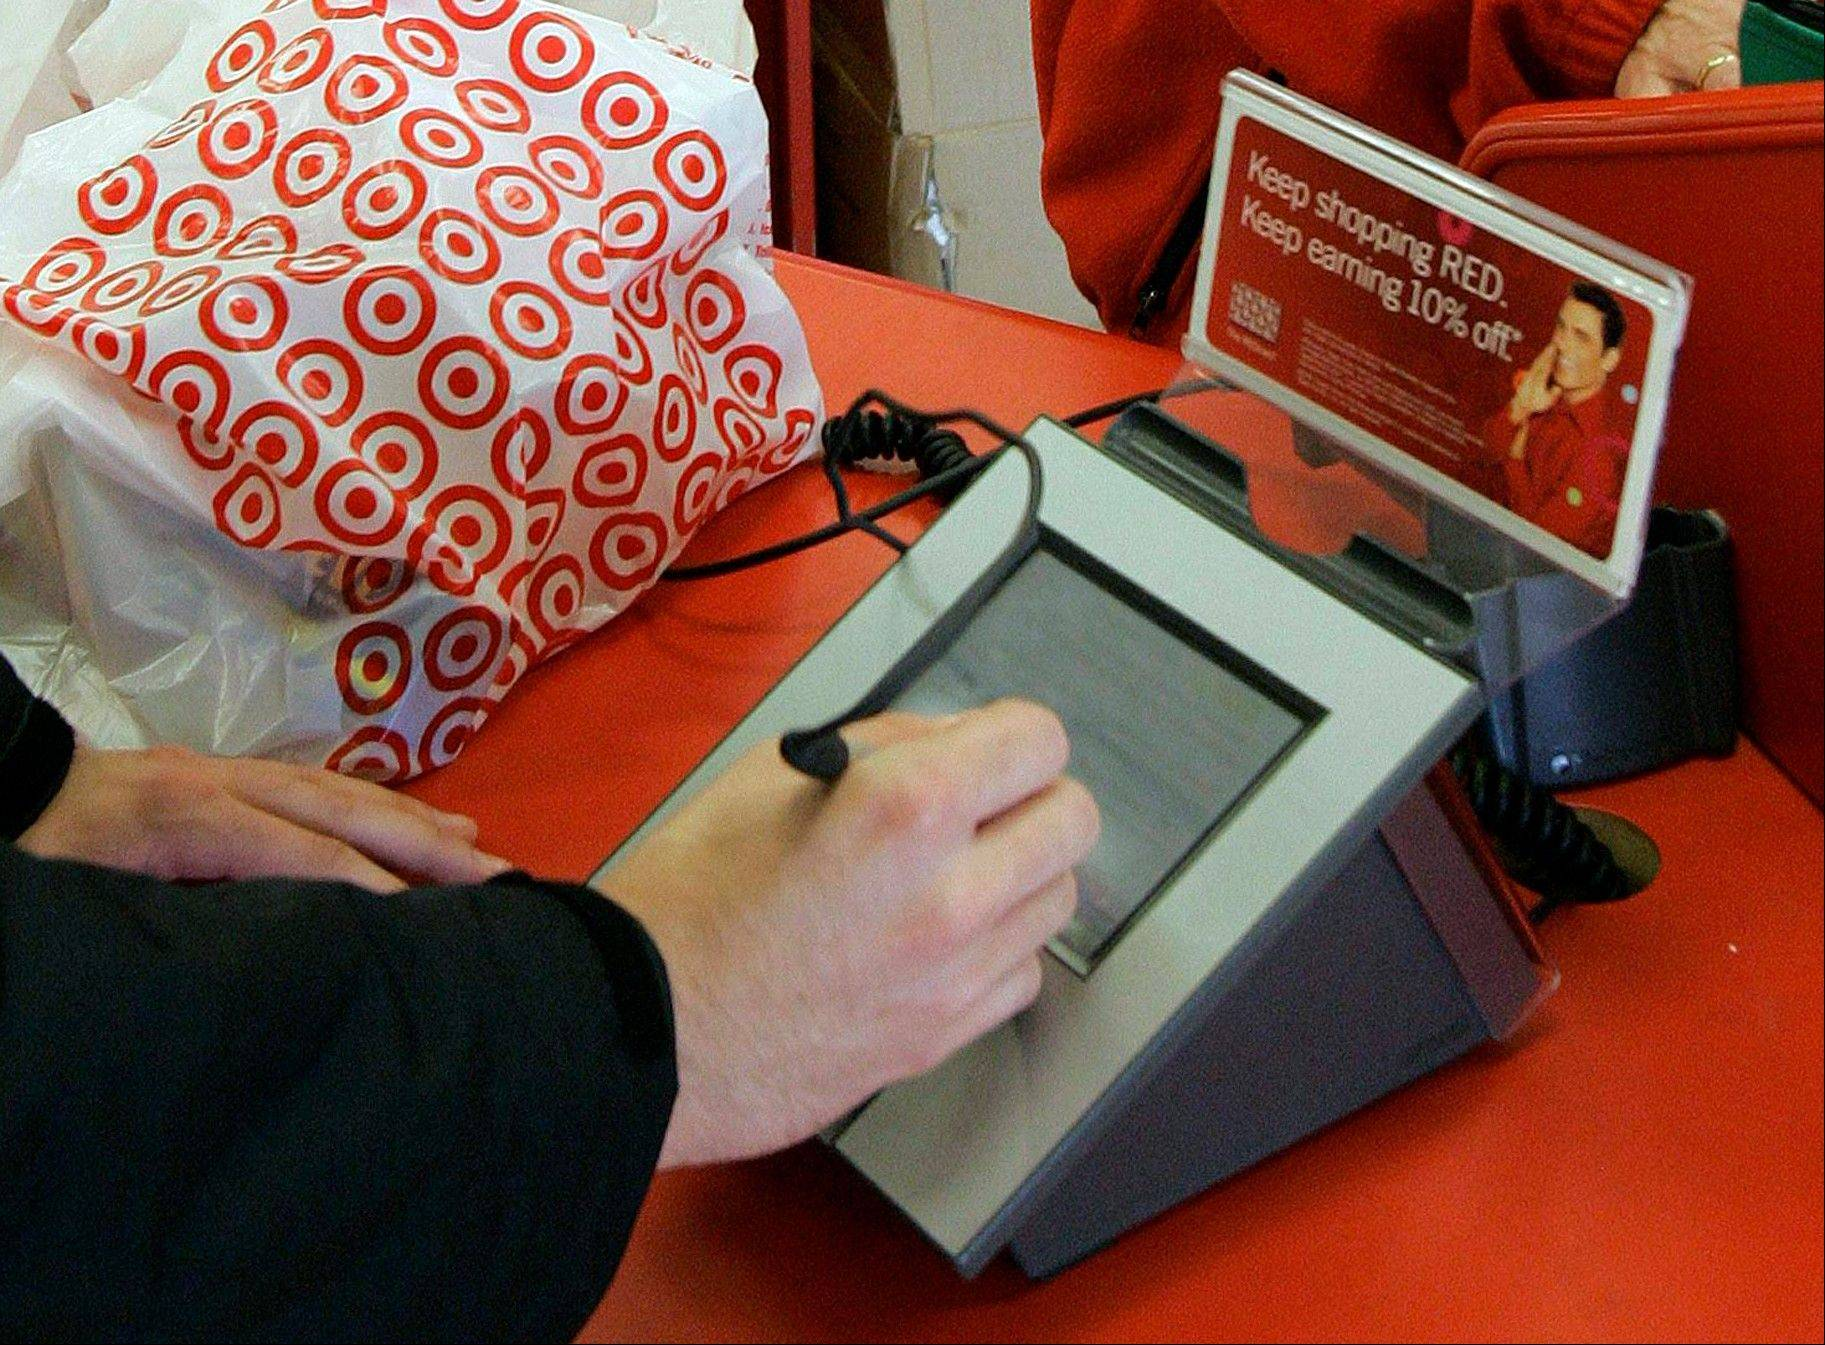 A customer signs his credit card receipt at a Target store in Tallahassee, Fla. Target and other U.S. retail